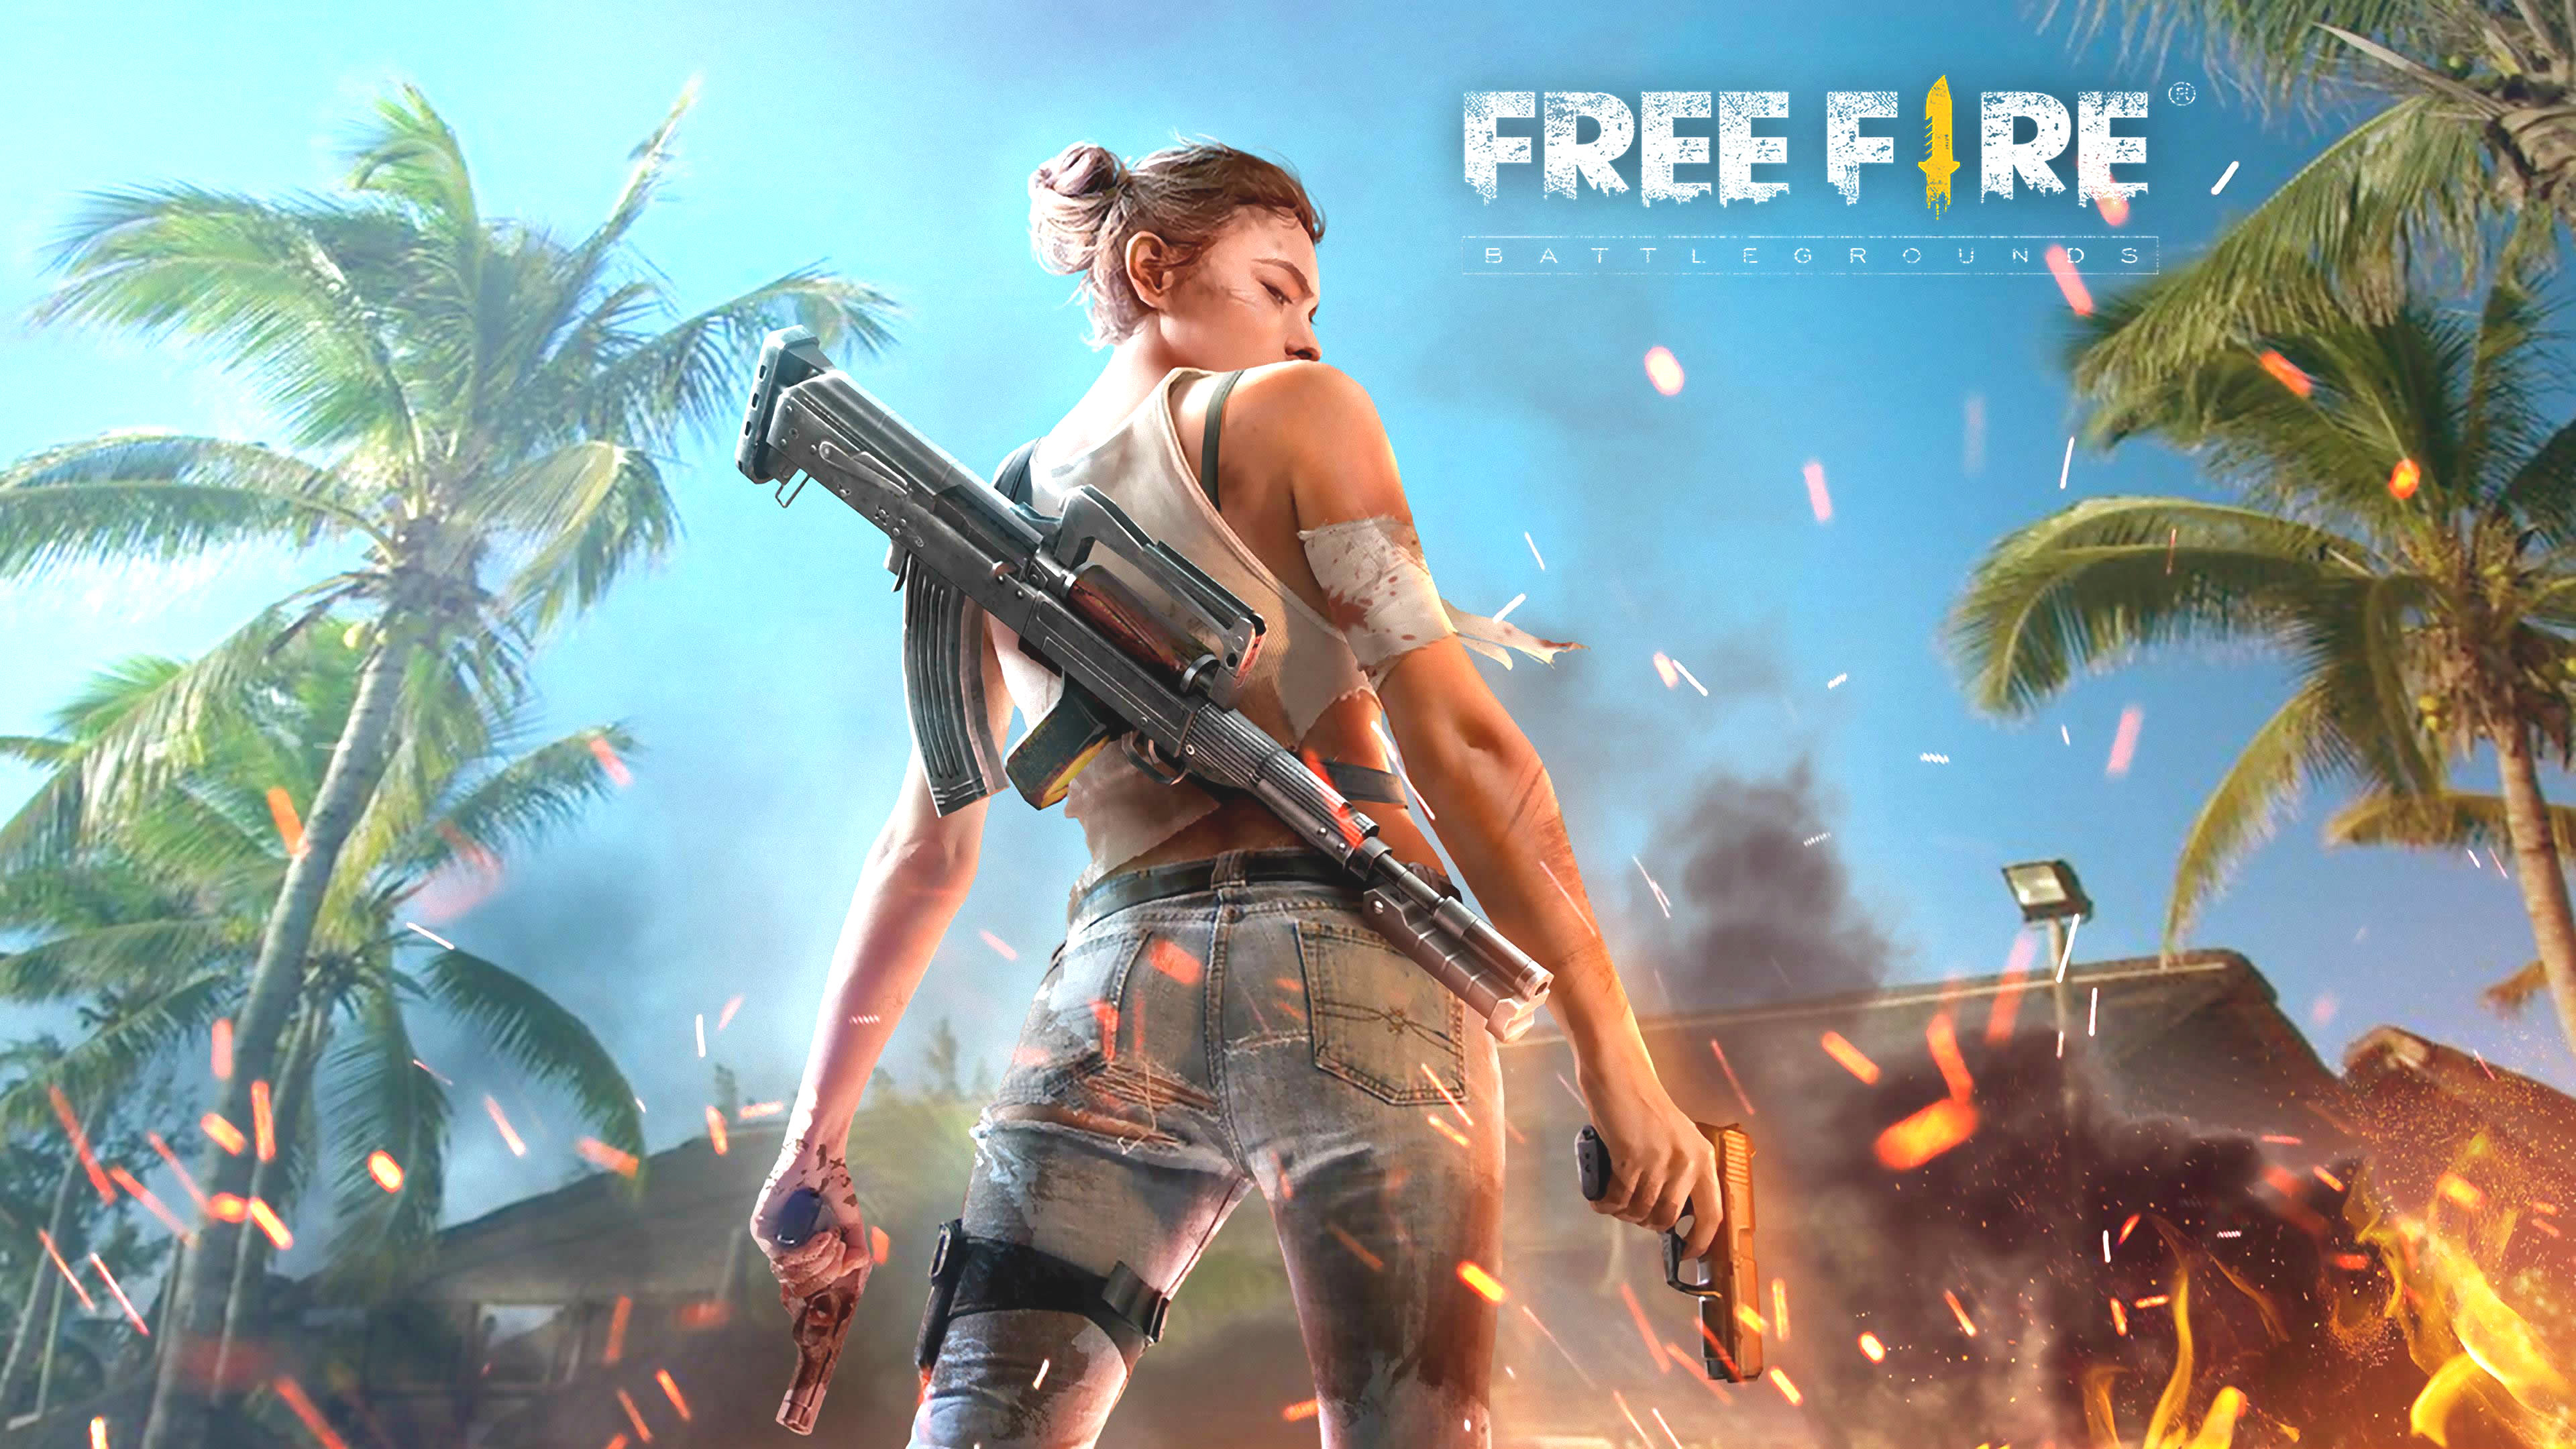 #4 Garena Free Fire Wallpaper 2019 - 2560 × 1440 (QHD, WQHD, Quad HD, 1440p)